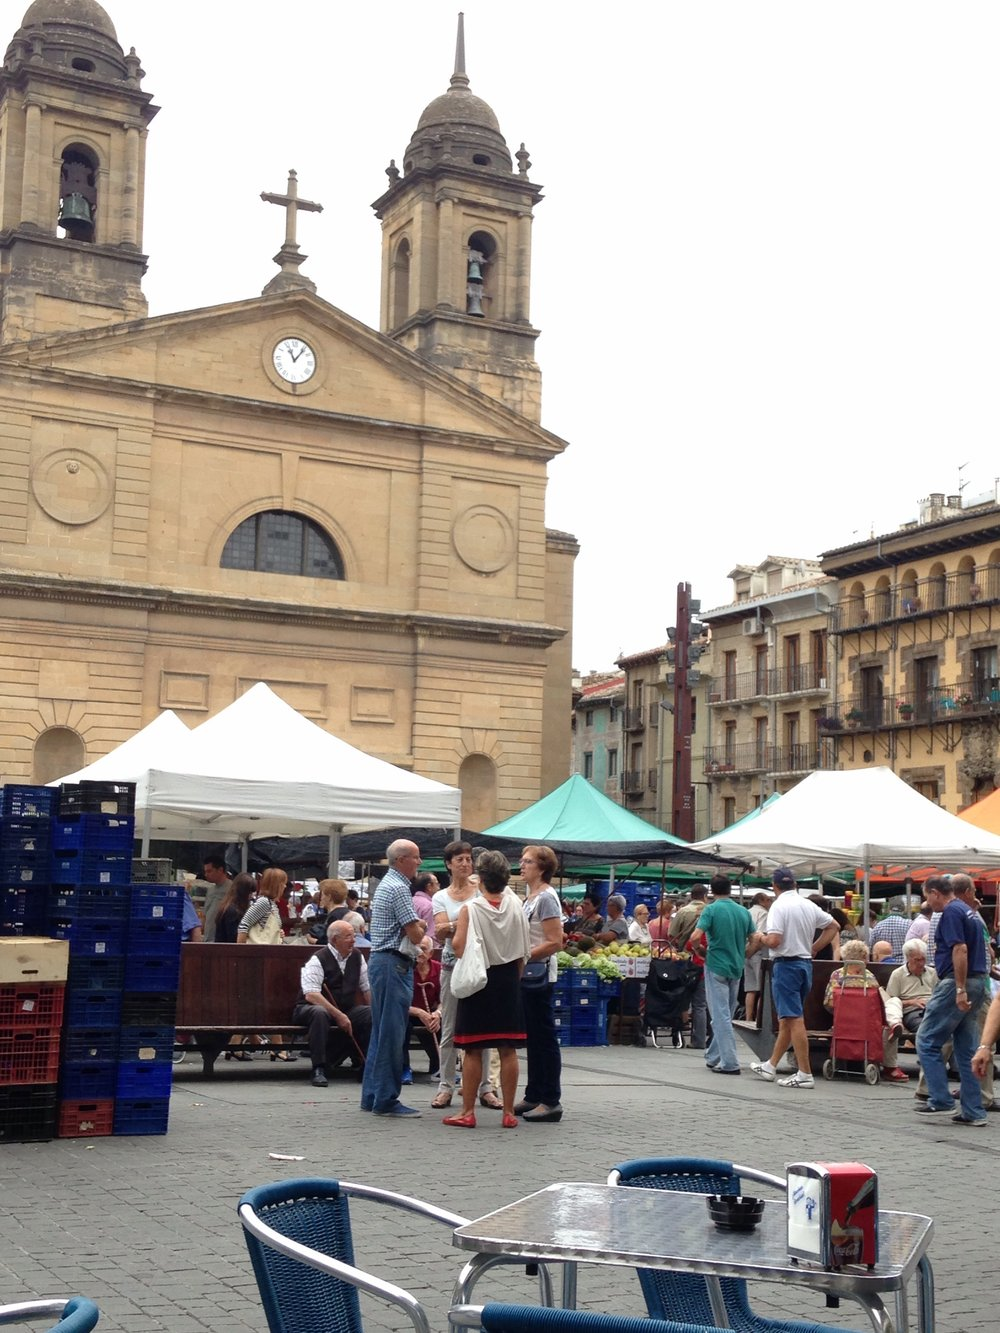 Arrived in Estella to find a farmers market outside my door.... Cooking in tonight